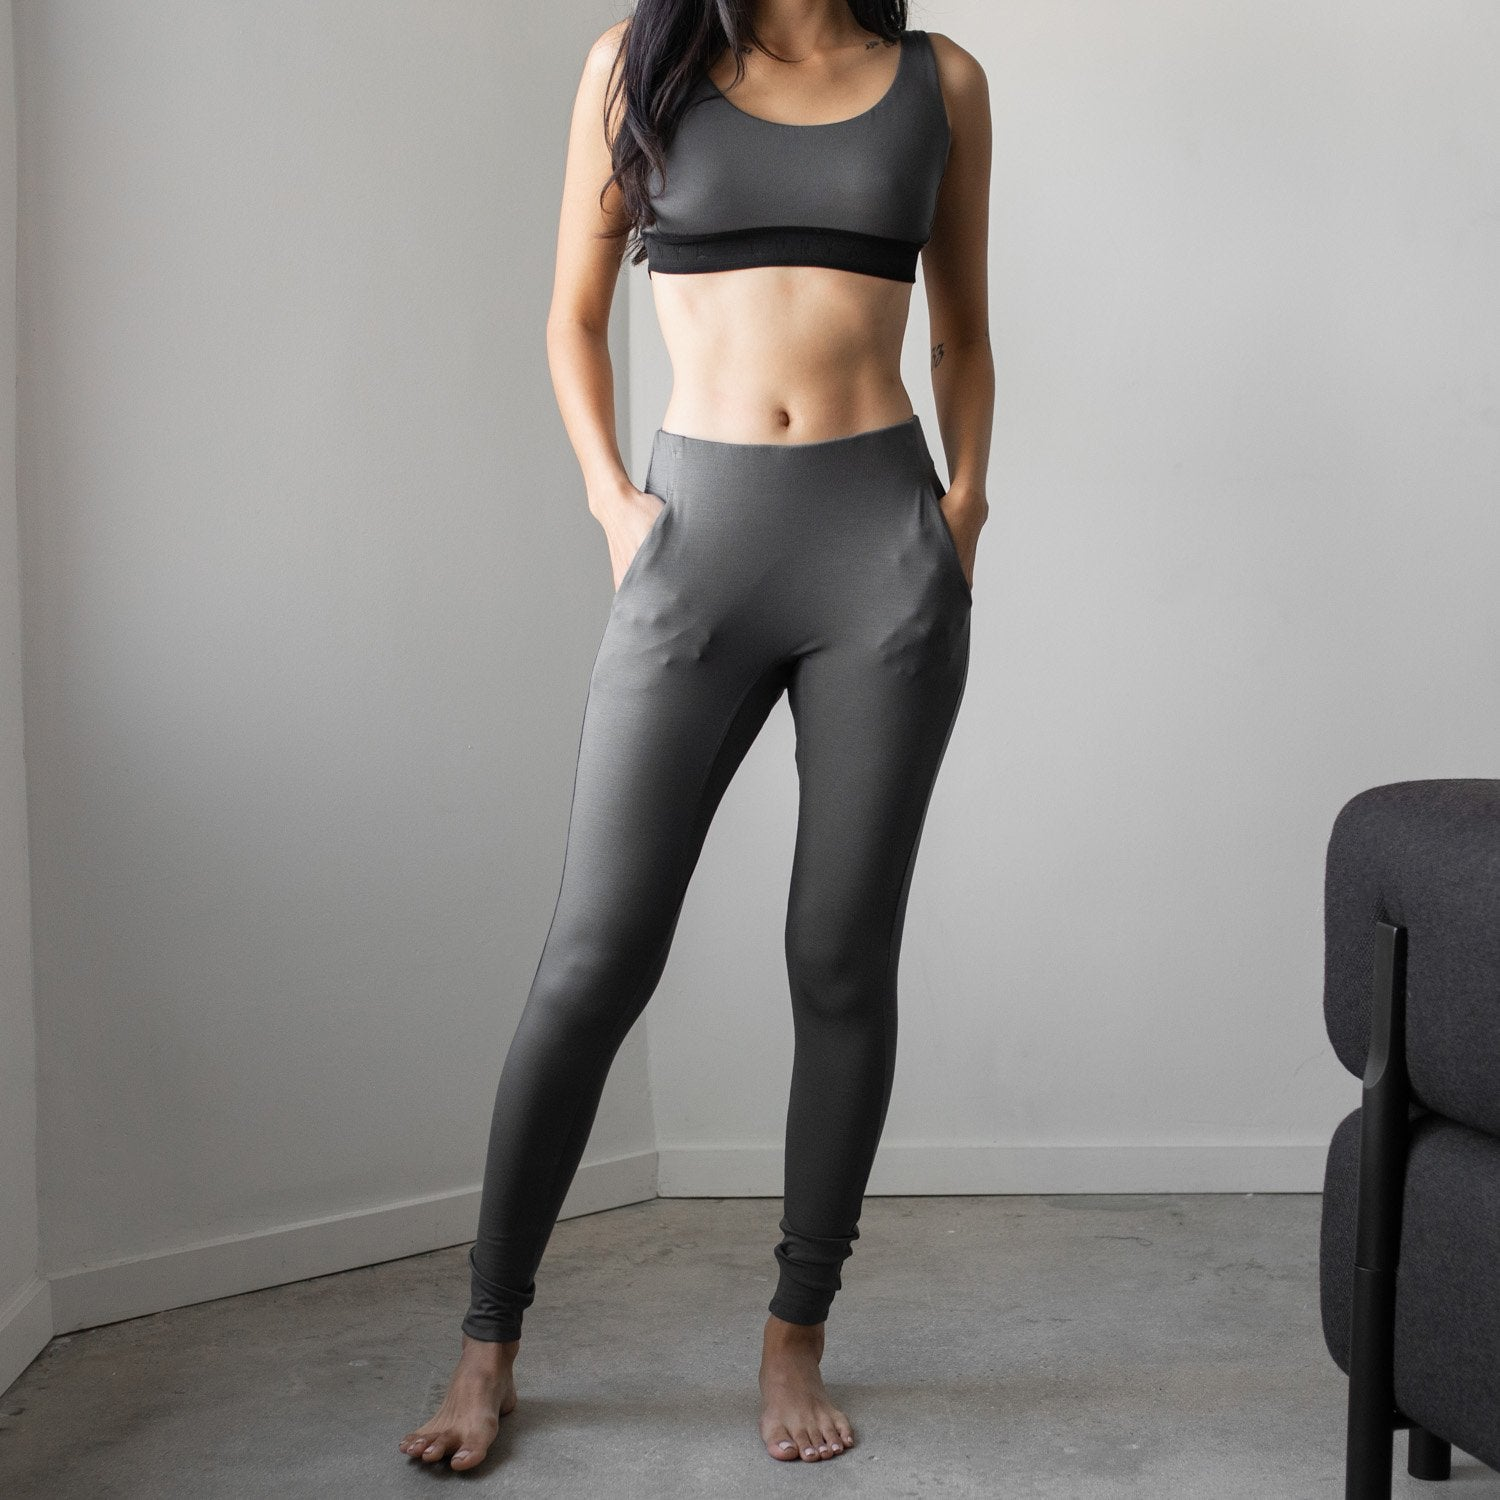 Lunya Sleepwear Siro Pocket Legging - #Eclipse